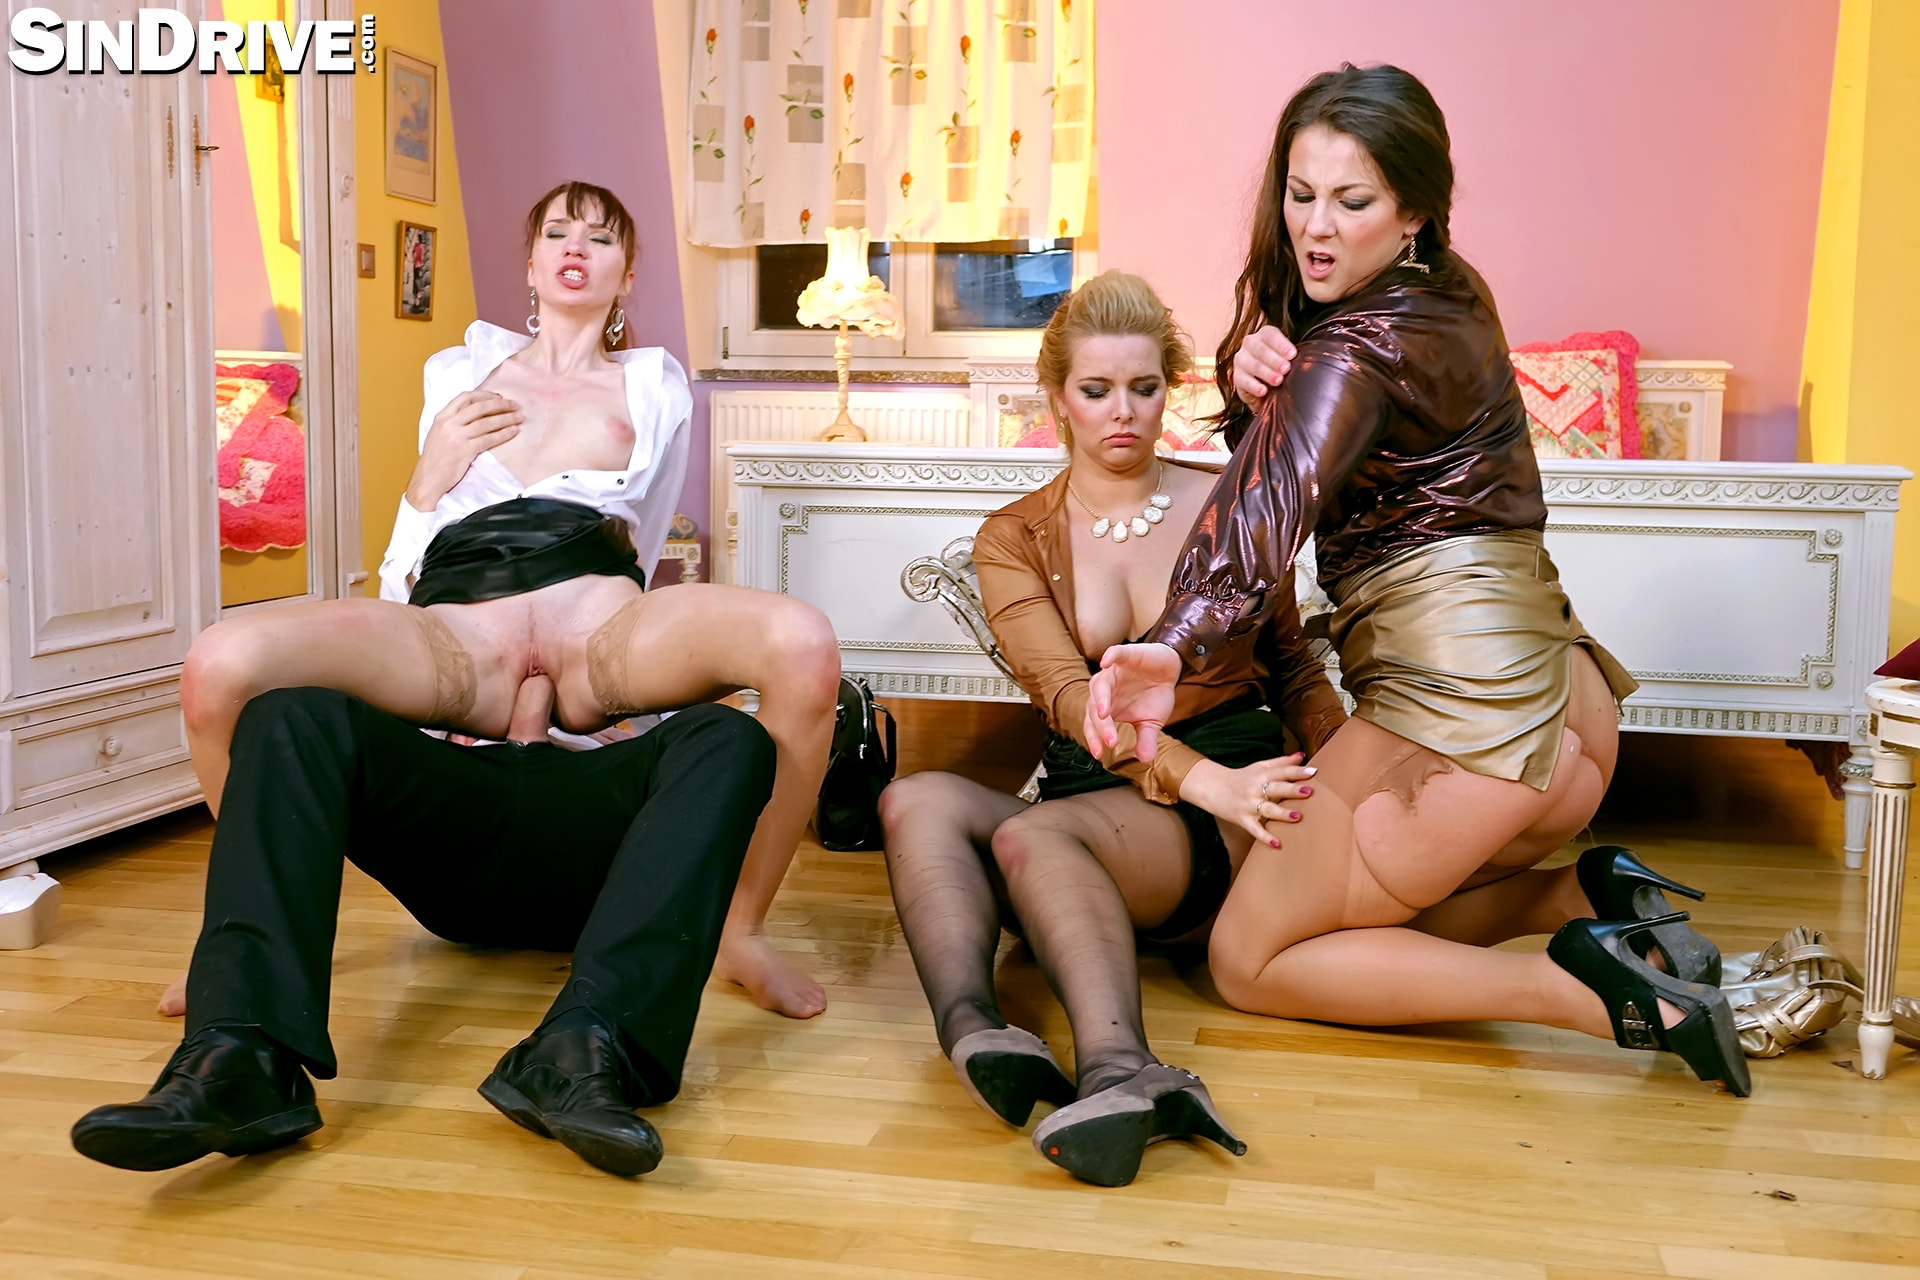 Hot foursome with eurobabes 6